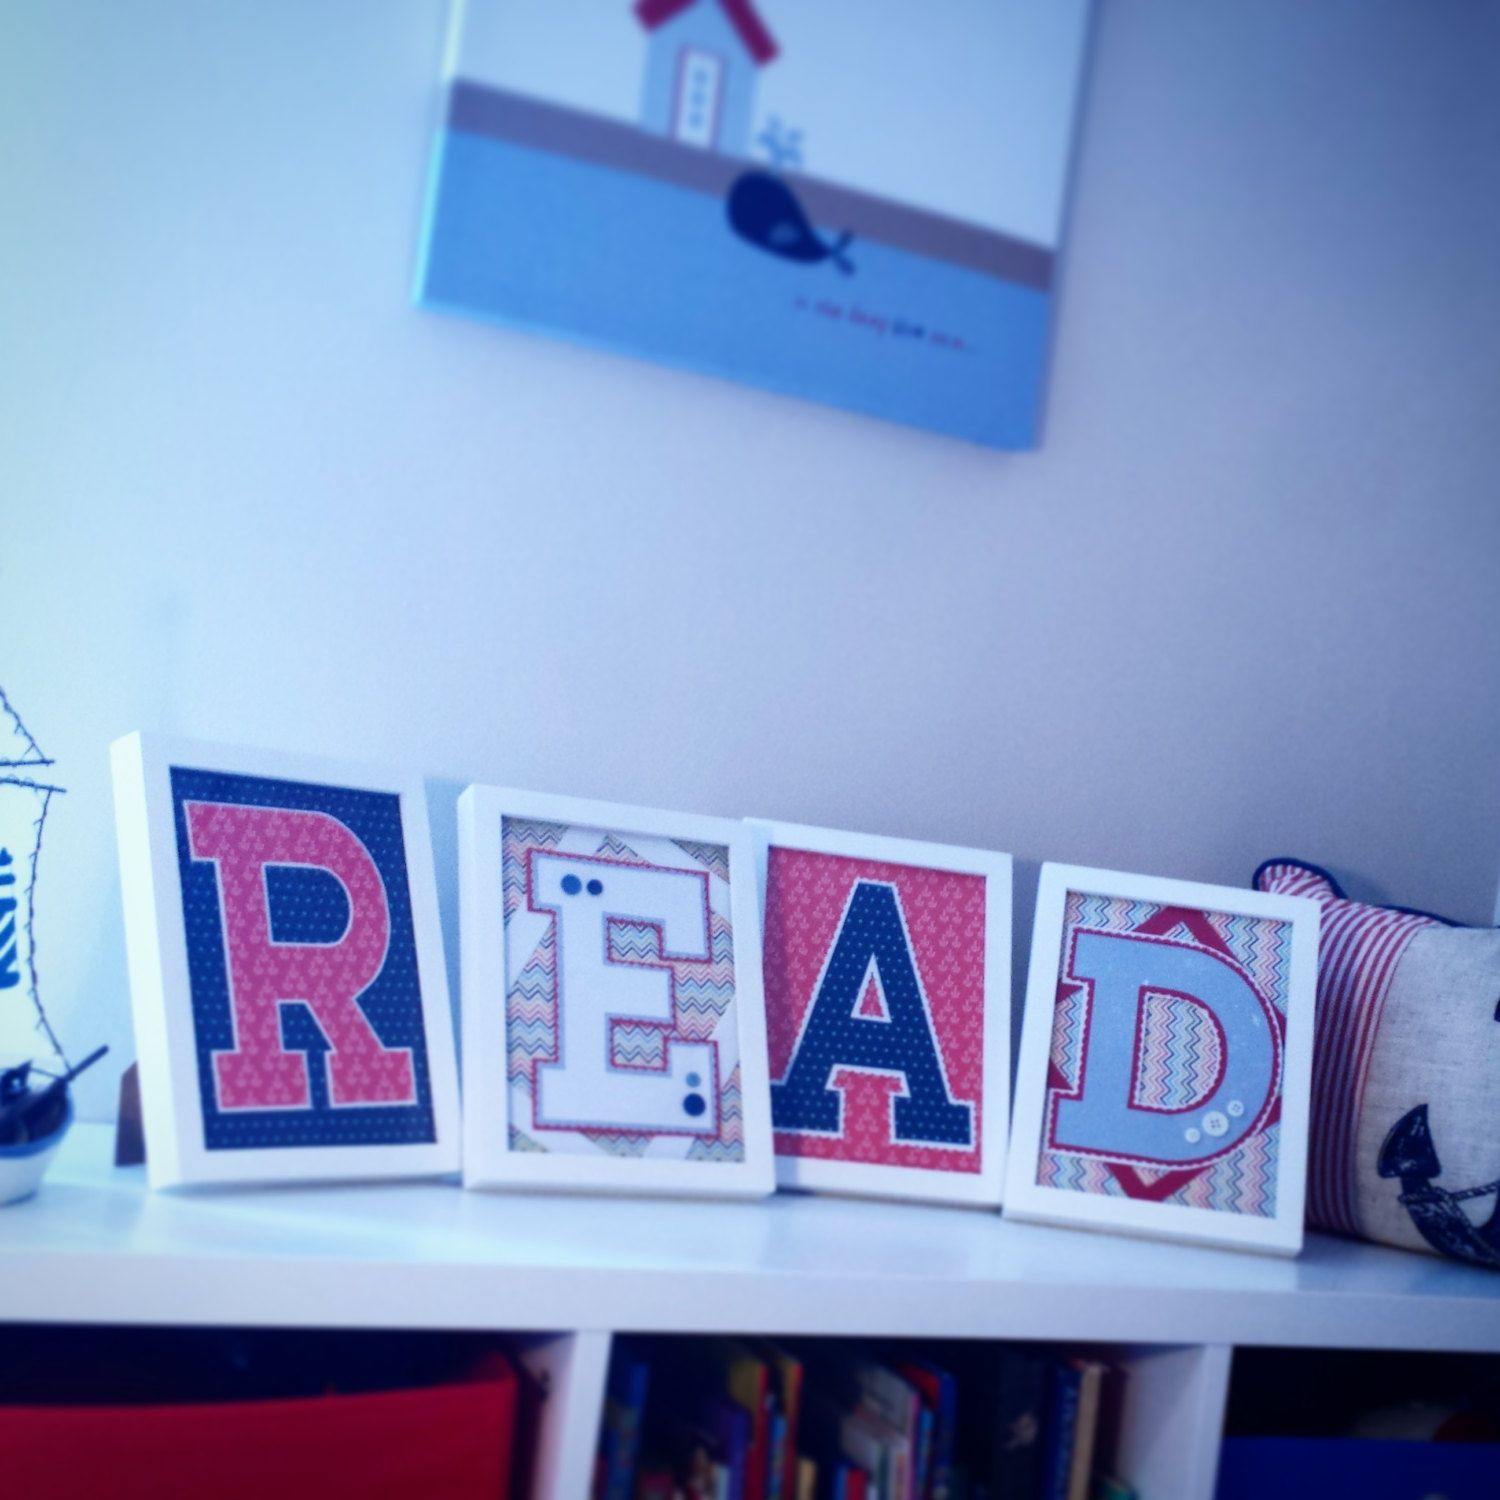 Bespoke Design Framed Letters And Wording, Childrens Bedroom, Playroom Nursery